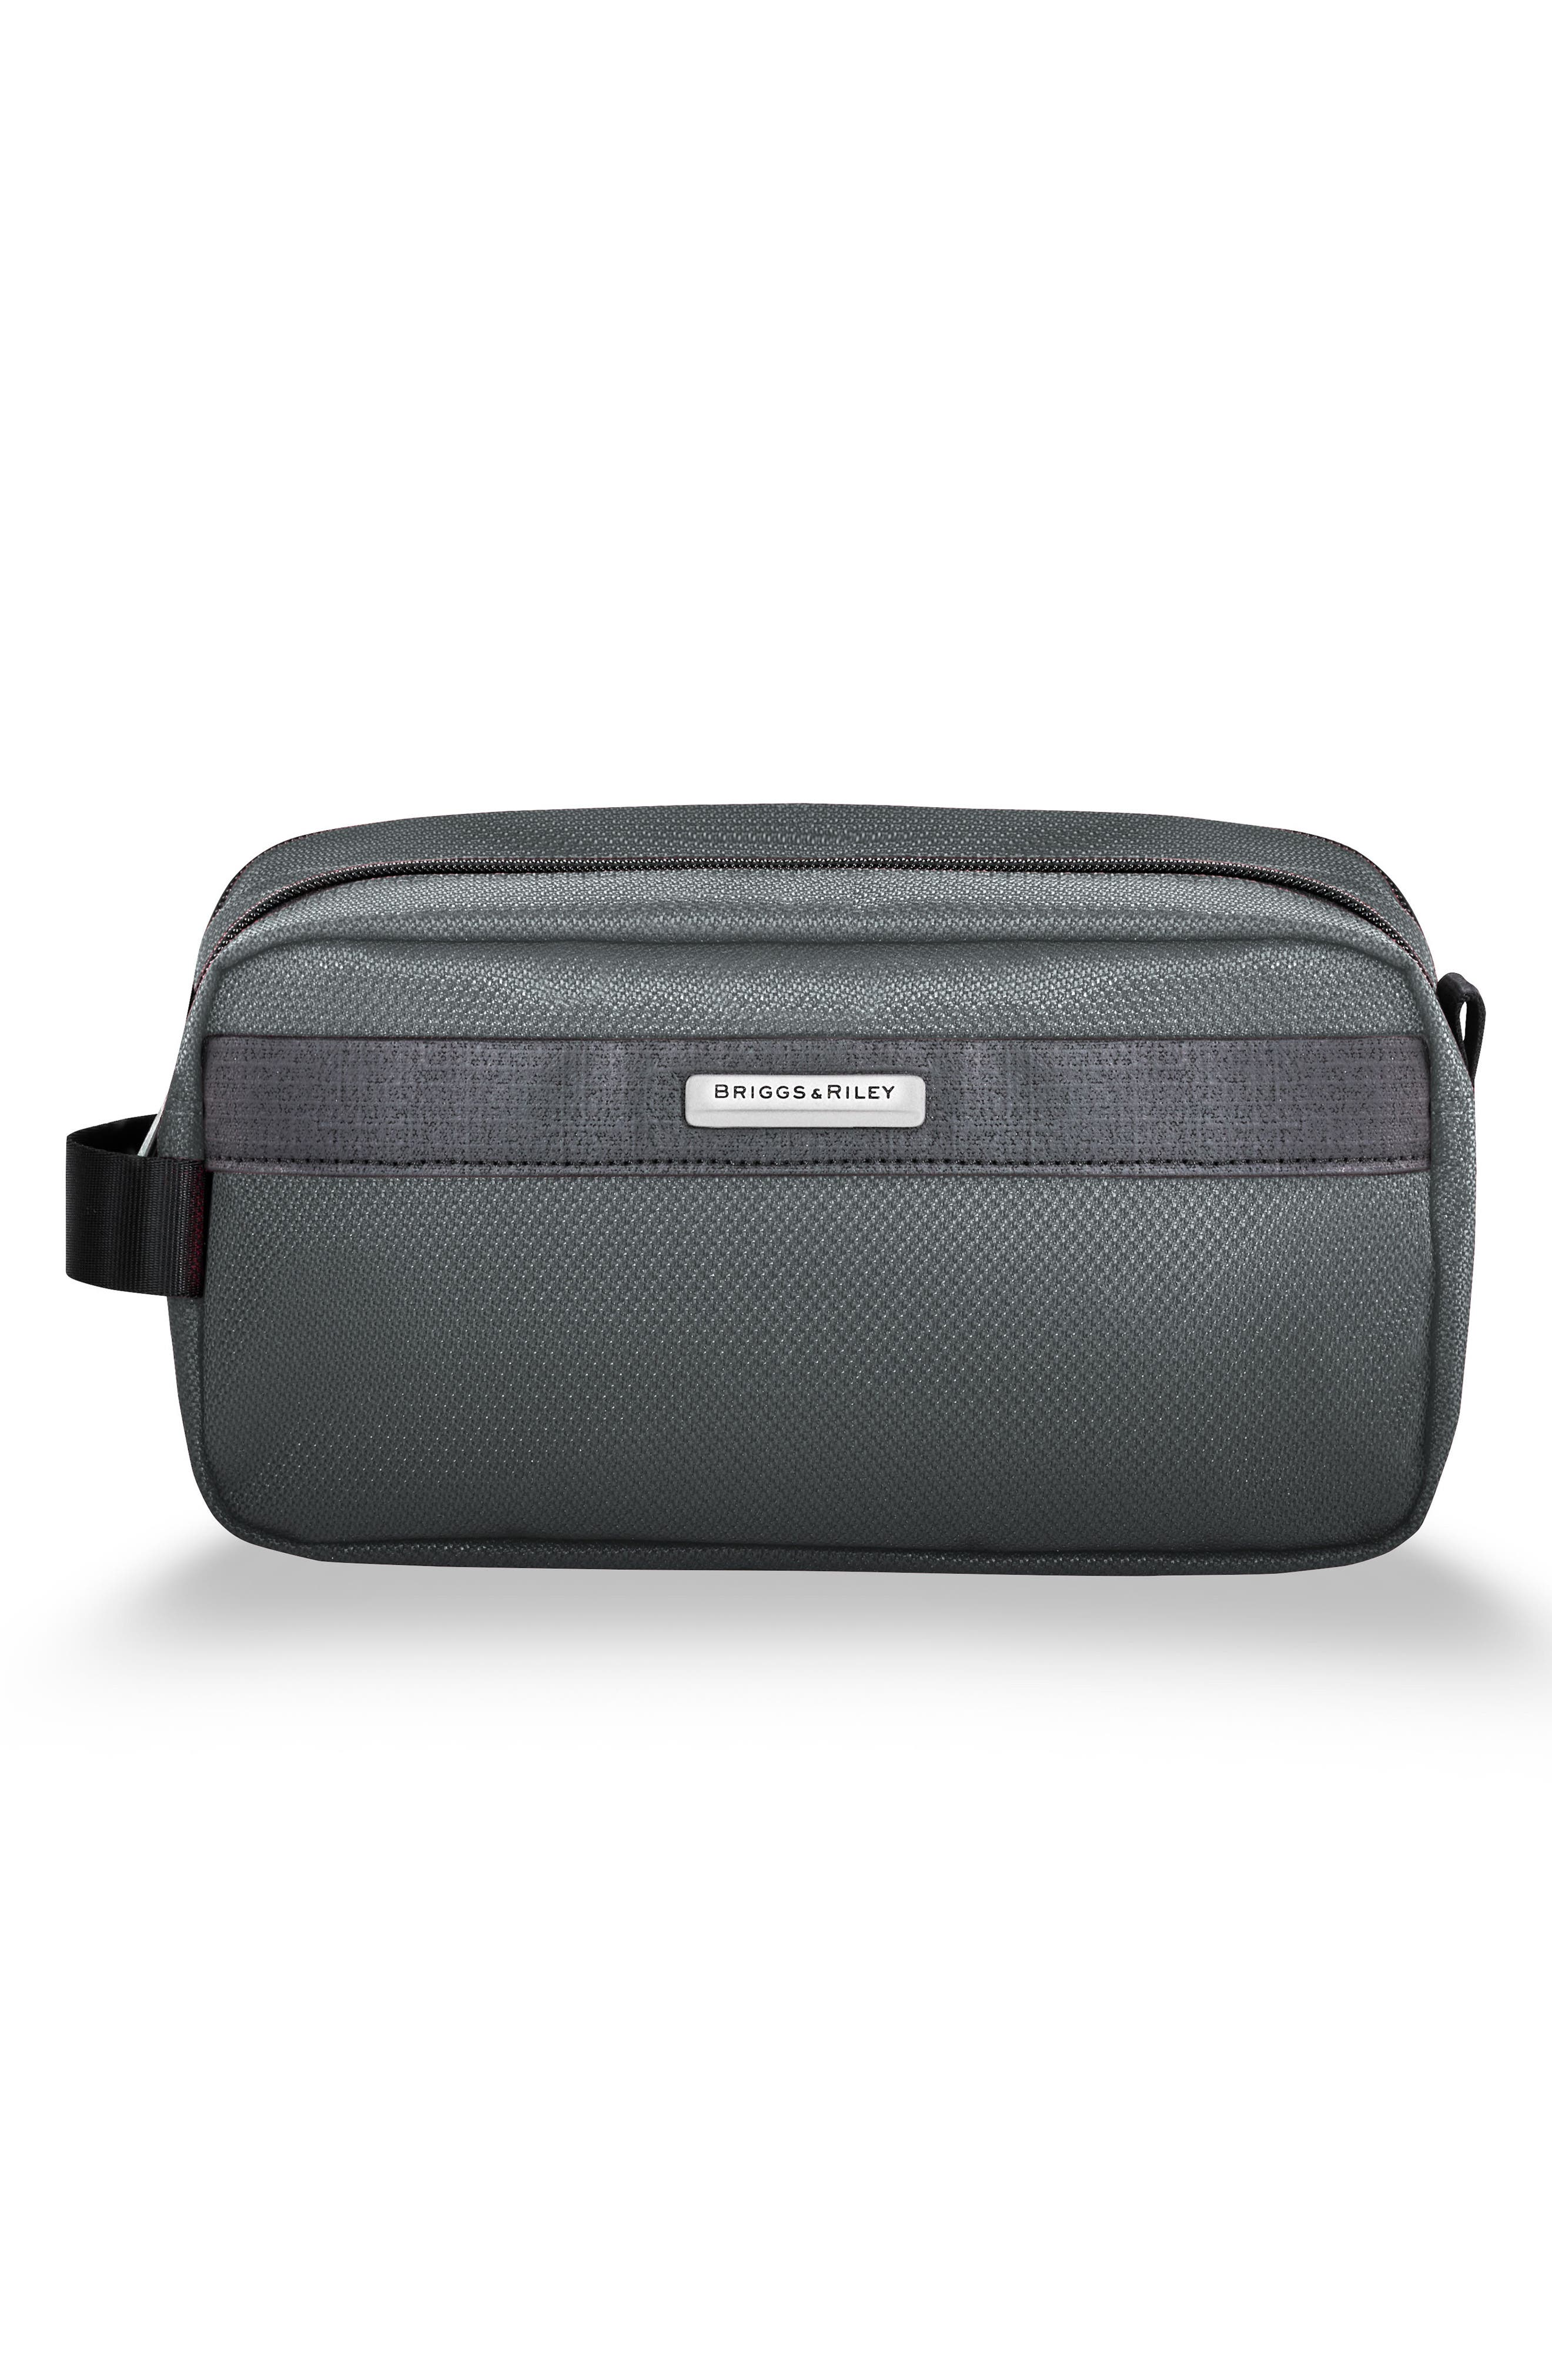 Main Image - Briggs & Riley Transcend 400 Toiletry Kit